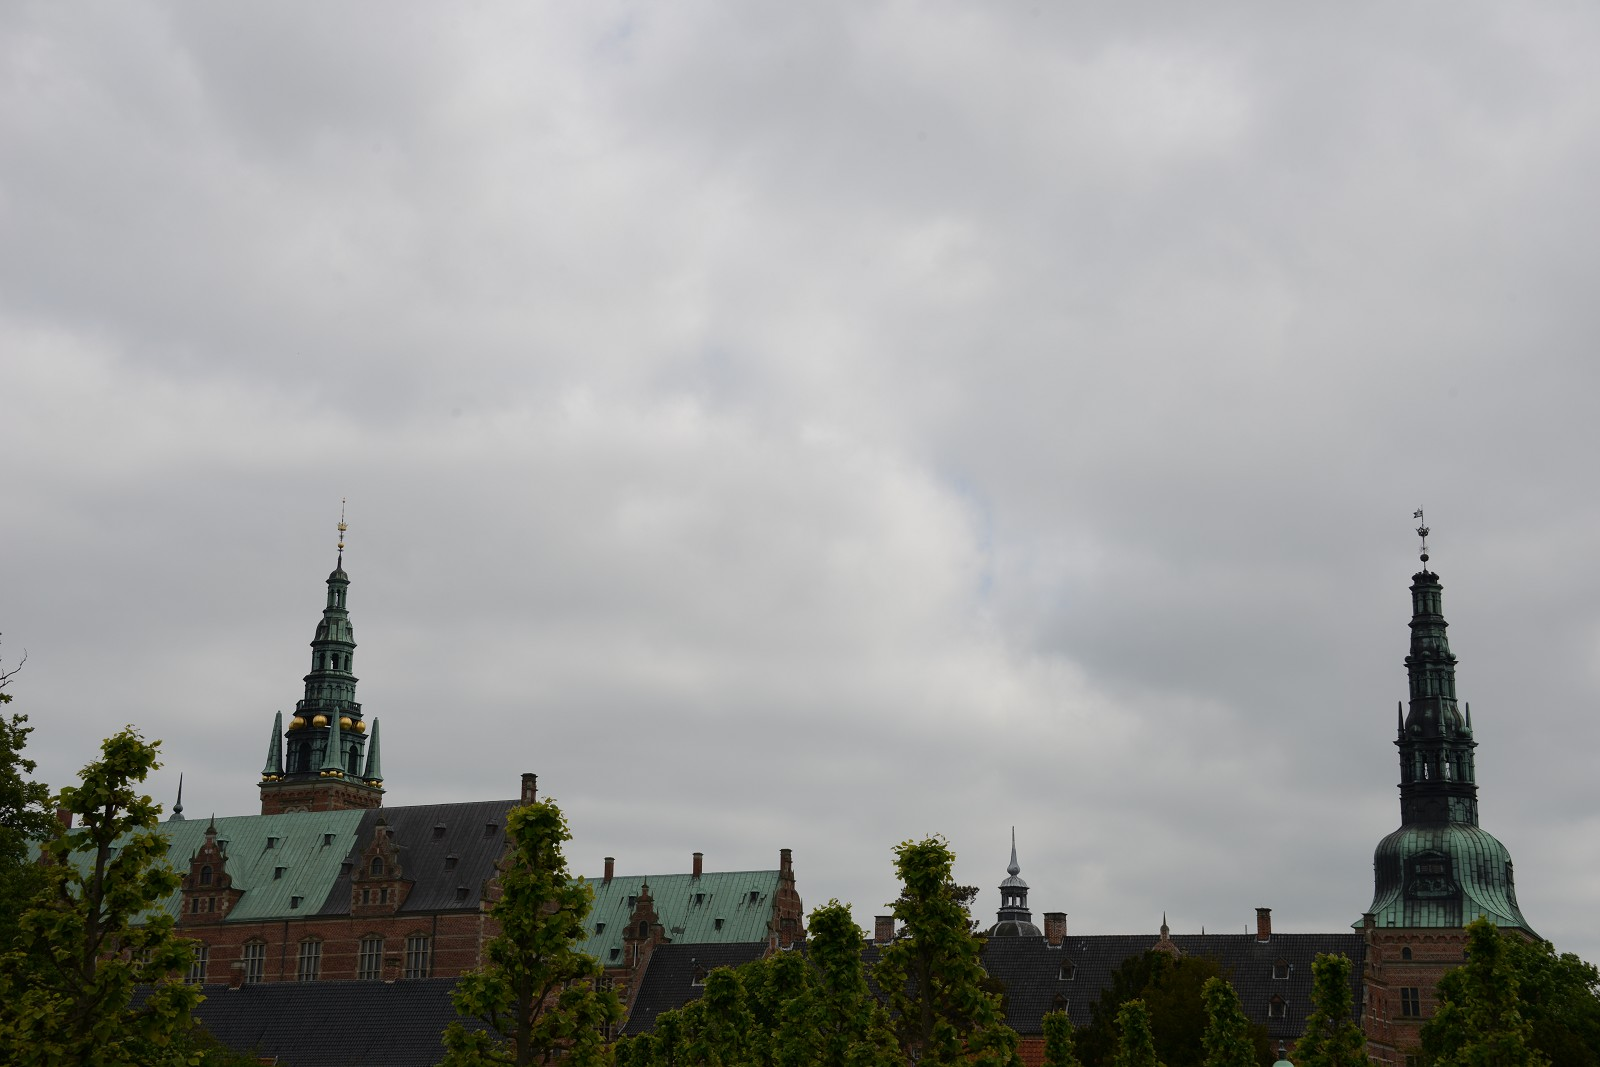 The museum of national history at frederiksborg castle copenhagen - The Museum Of National History At Frederiksborg Castle Copenhagen 22